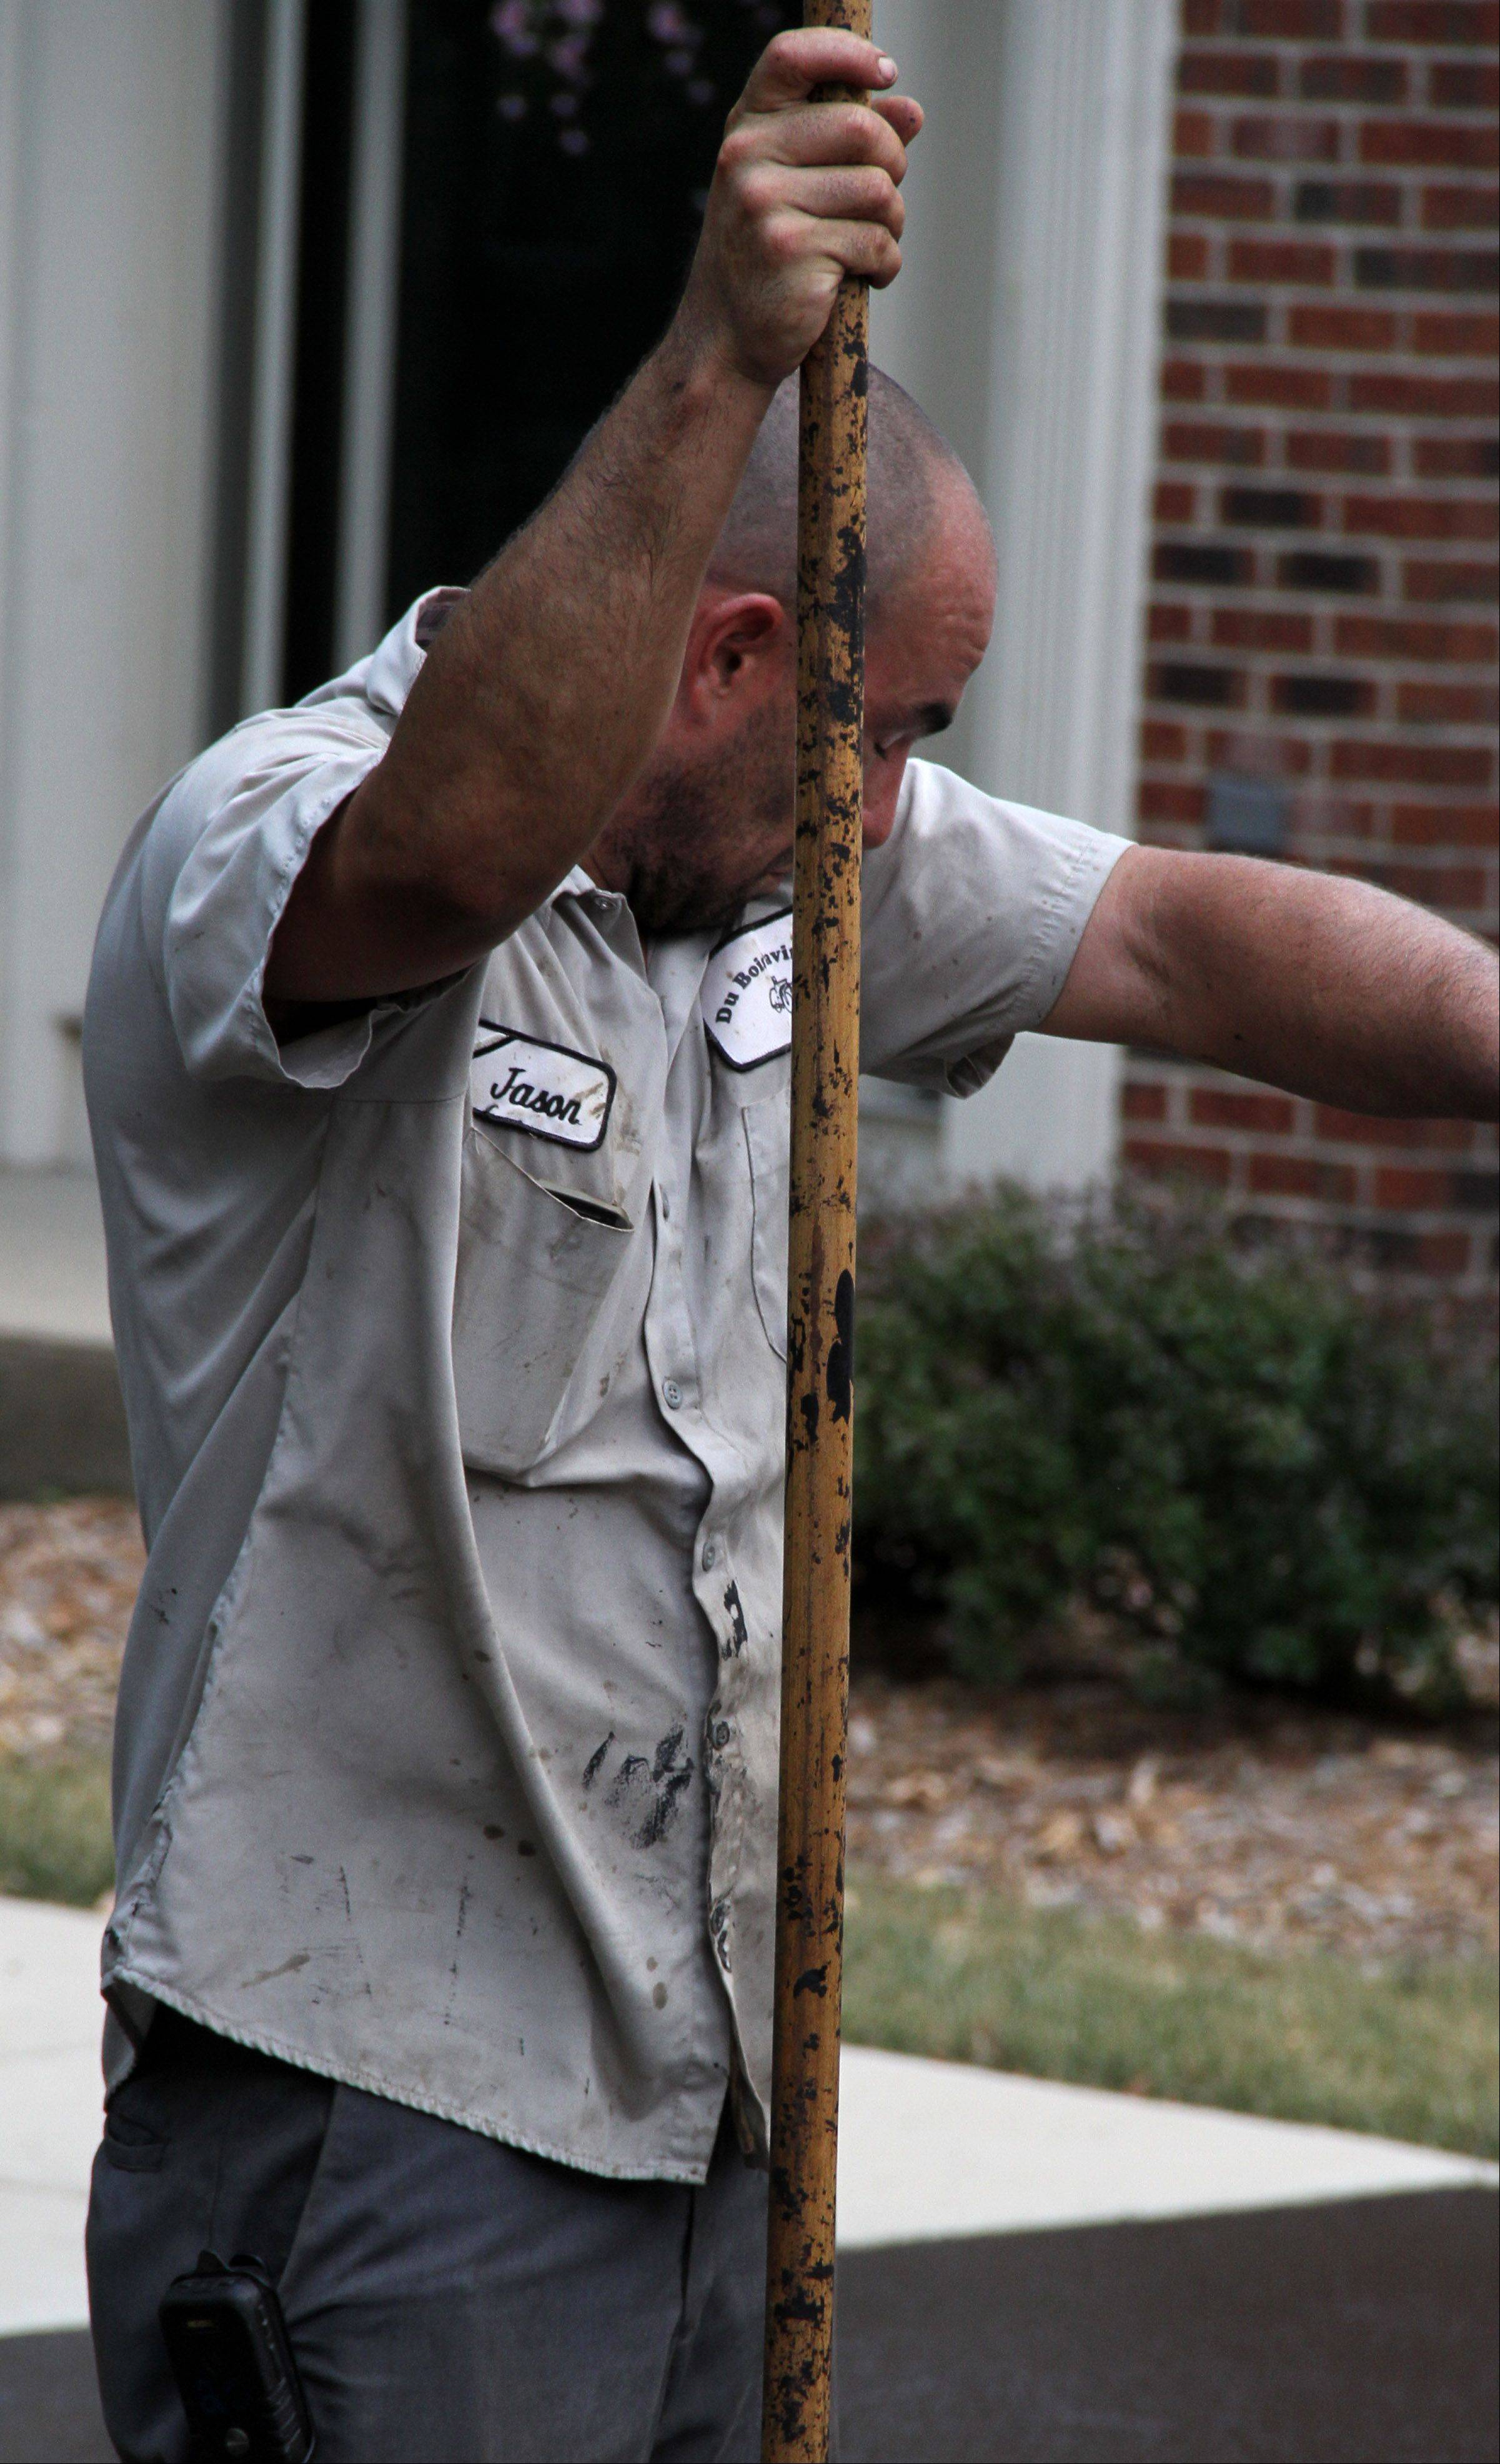 Jason Clem of Woodlawn wipes his forehead after applying sealer to condominium driveways in Wheeling on Tuesday.